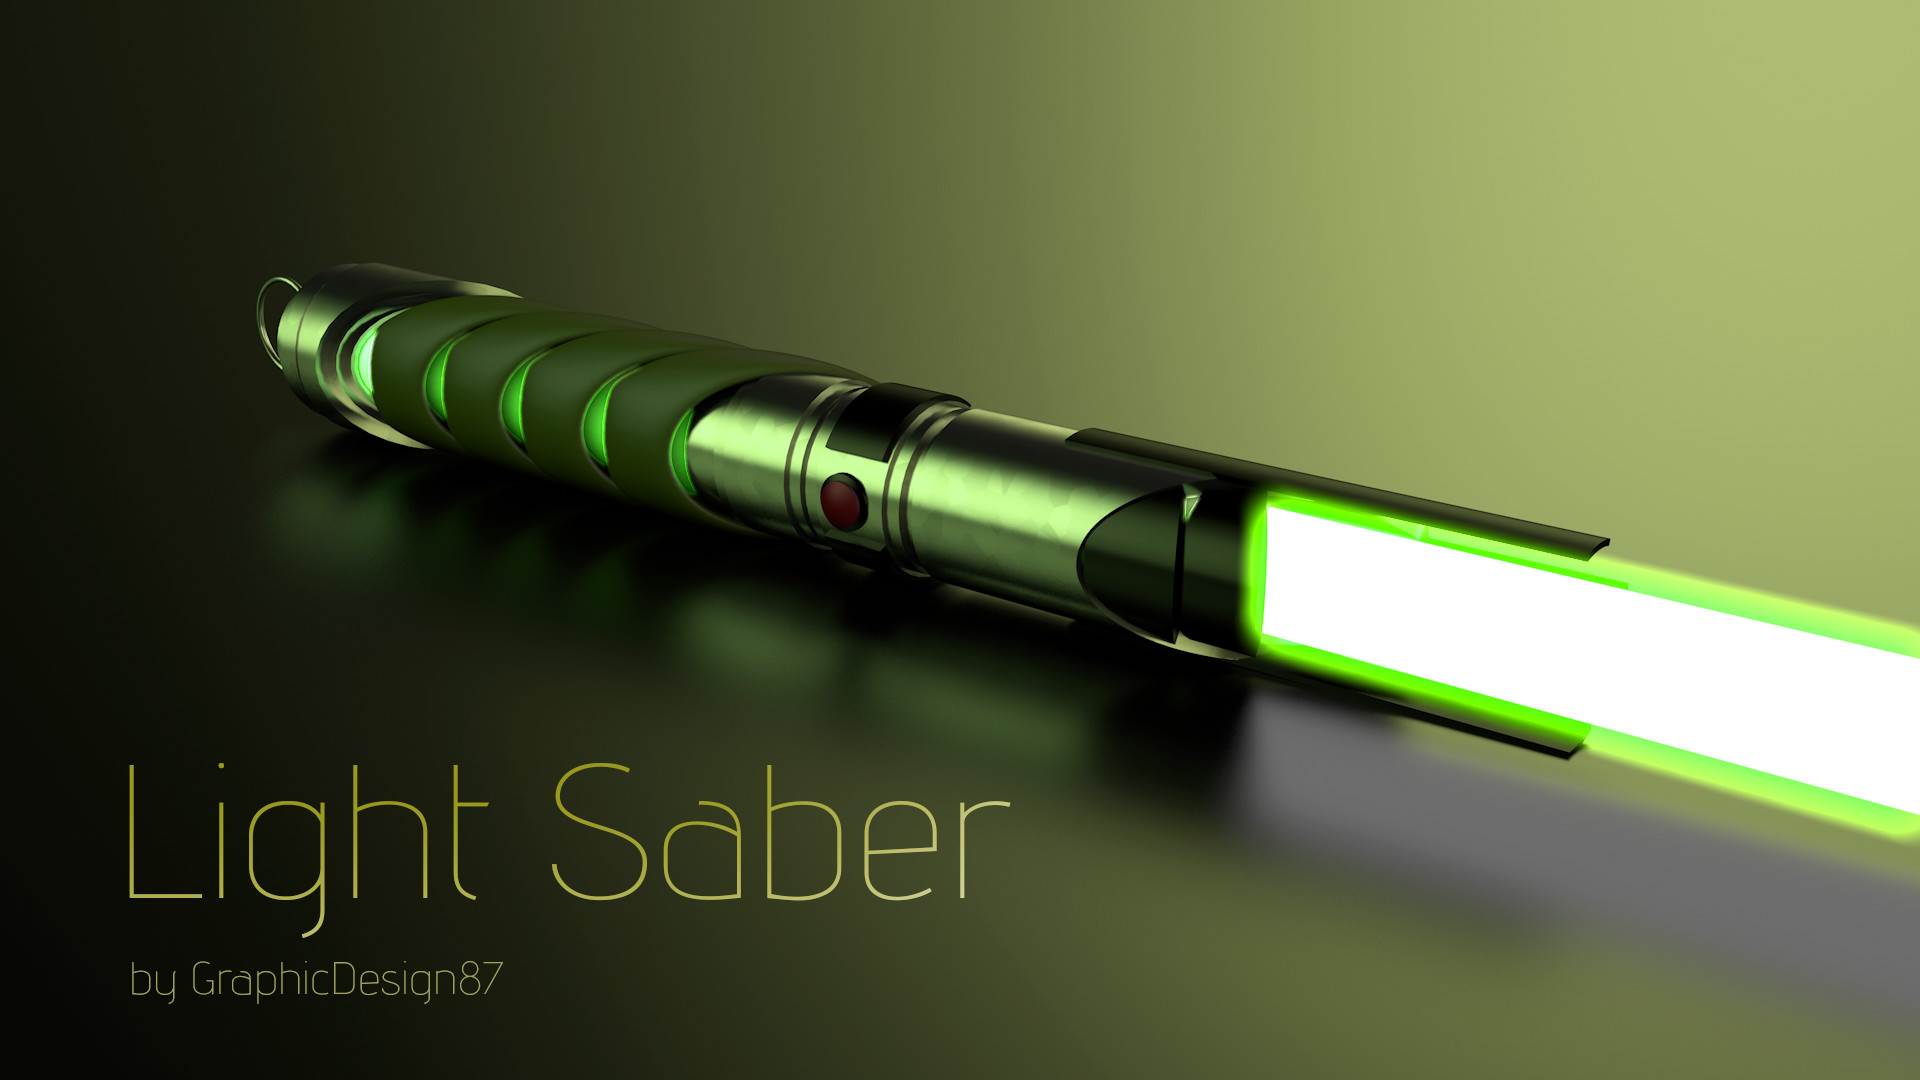 1920x1080 Download Original Size · Lightsabers wallpaper Minimalistic wallpapers ...